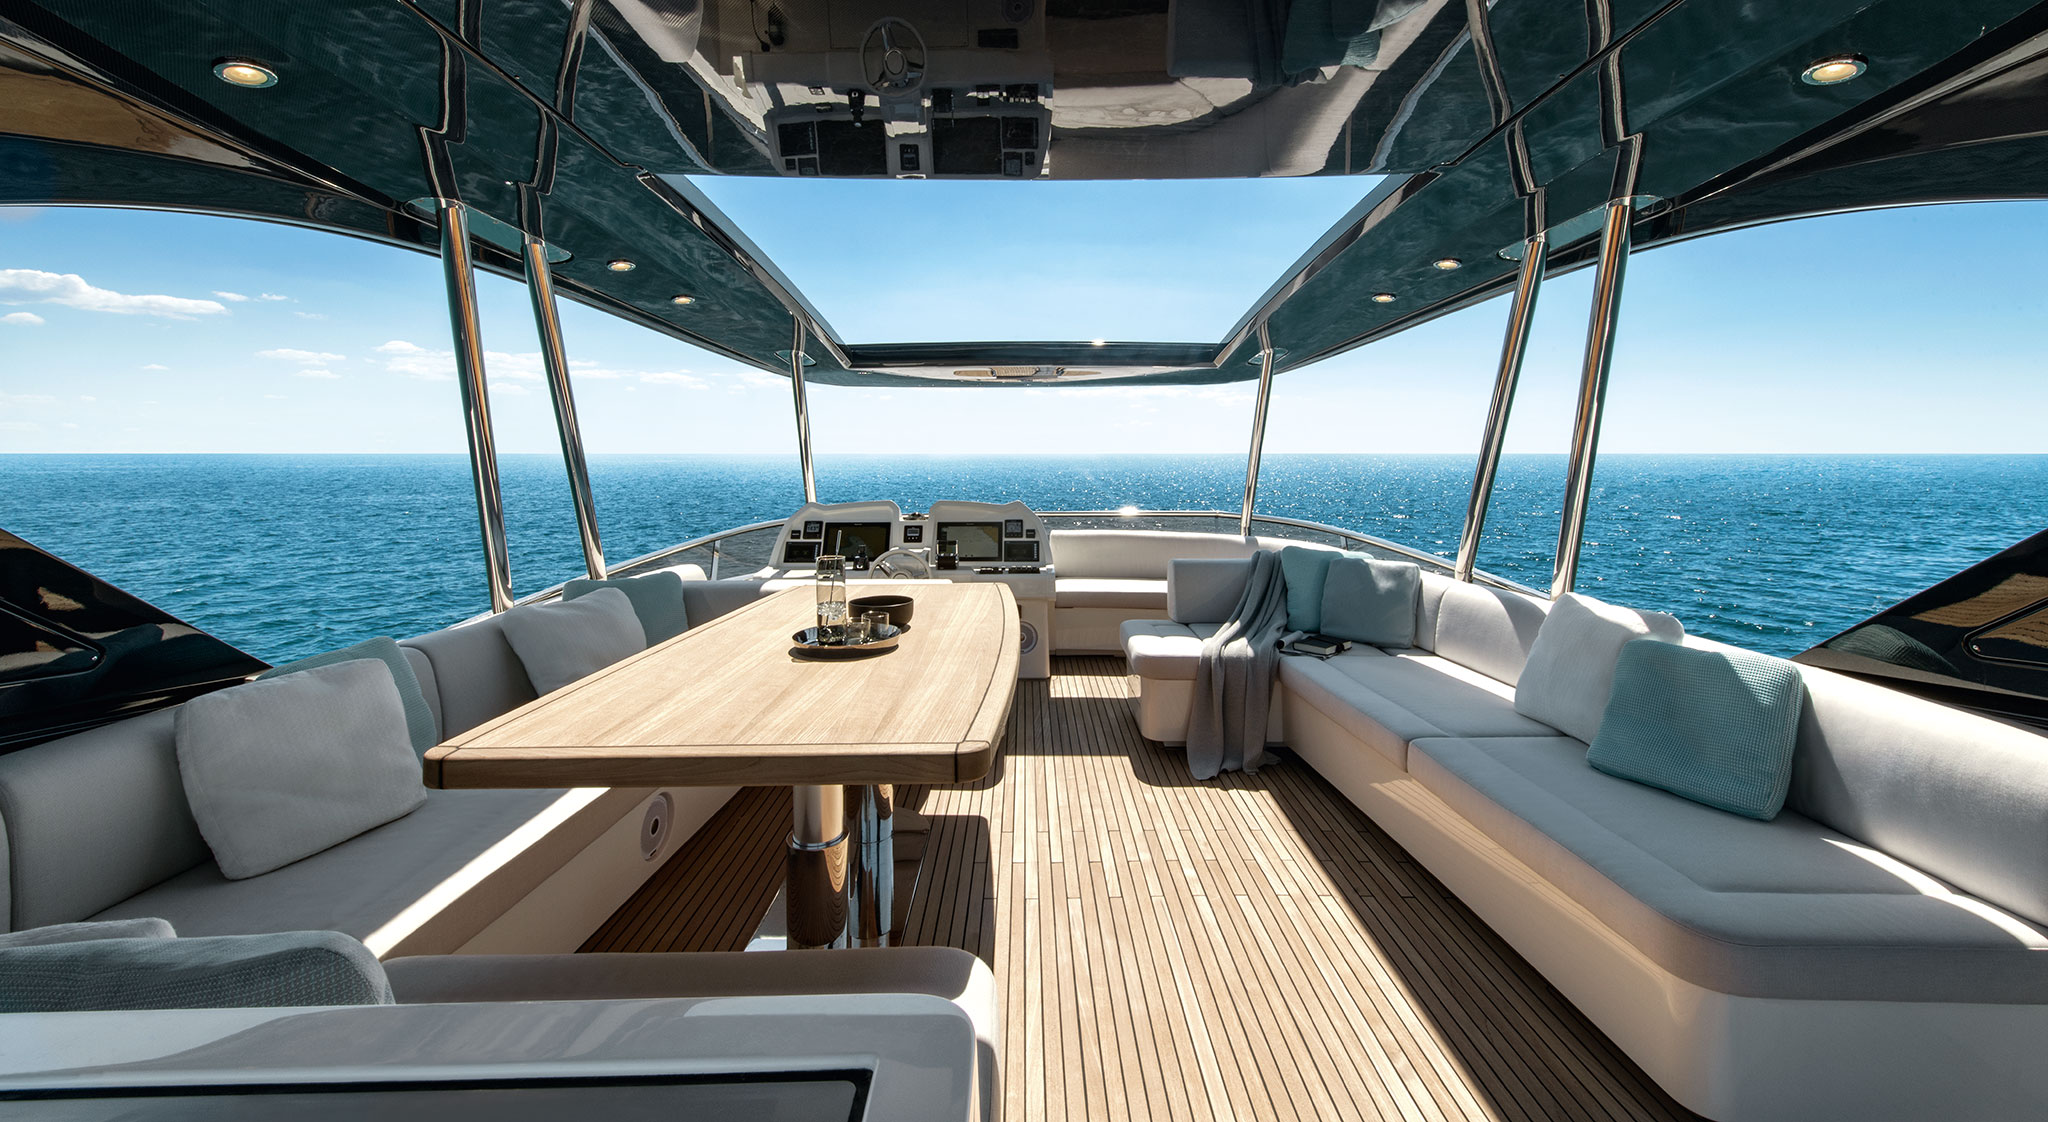 monte-carlo-yachts-70-Flybridge-yachts-france-172